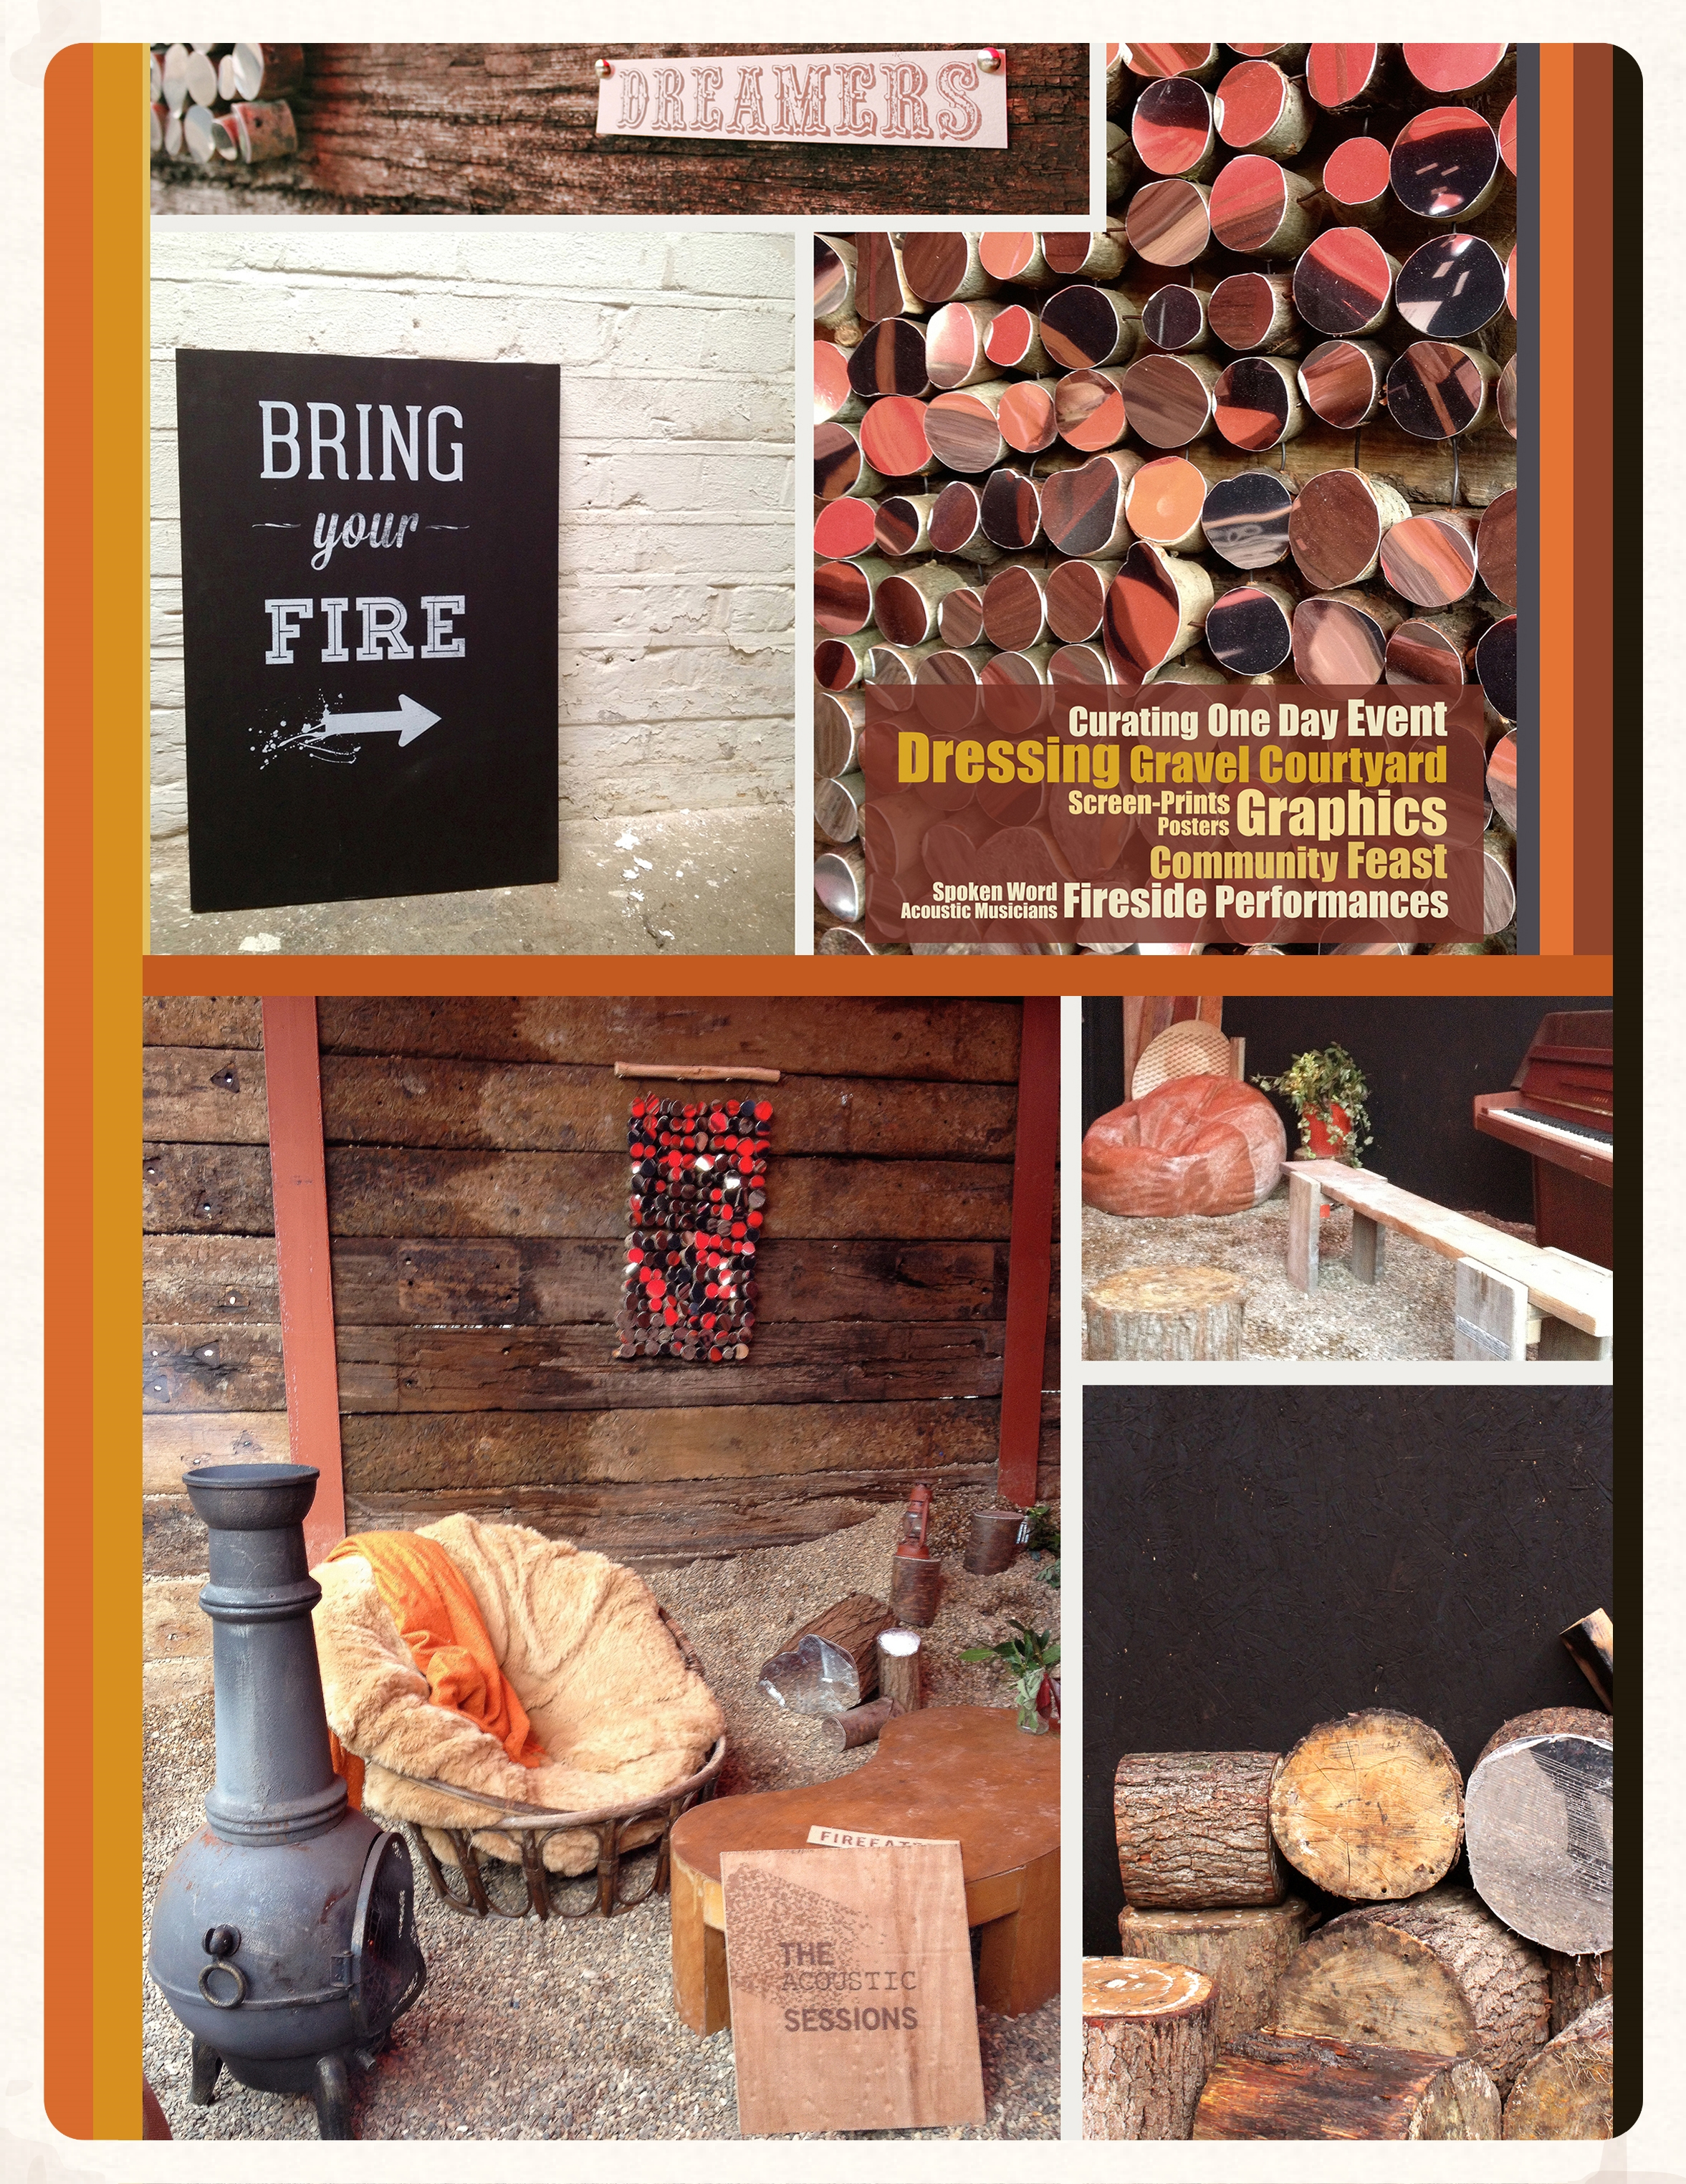 Fired UP! - Barking Bathhouse Day Event